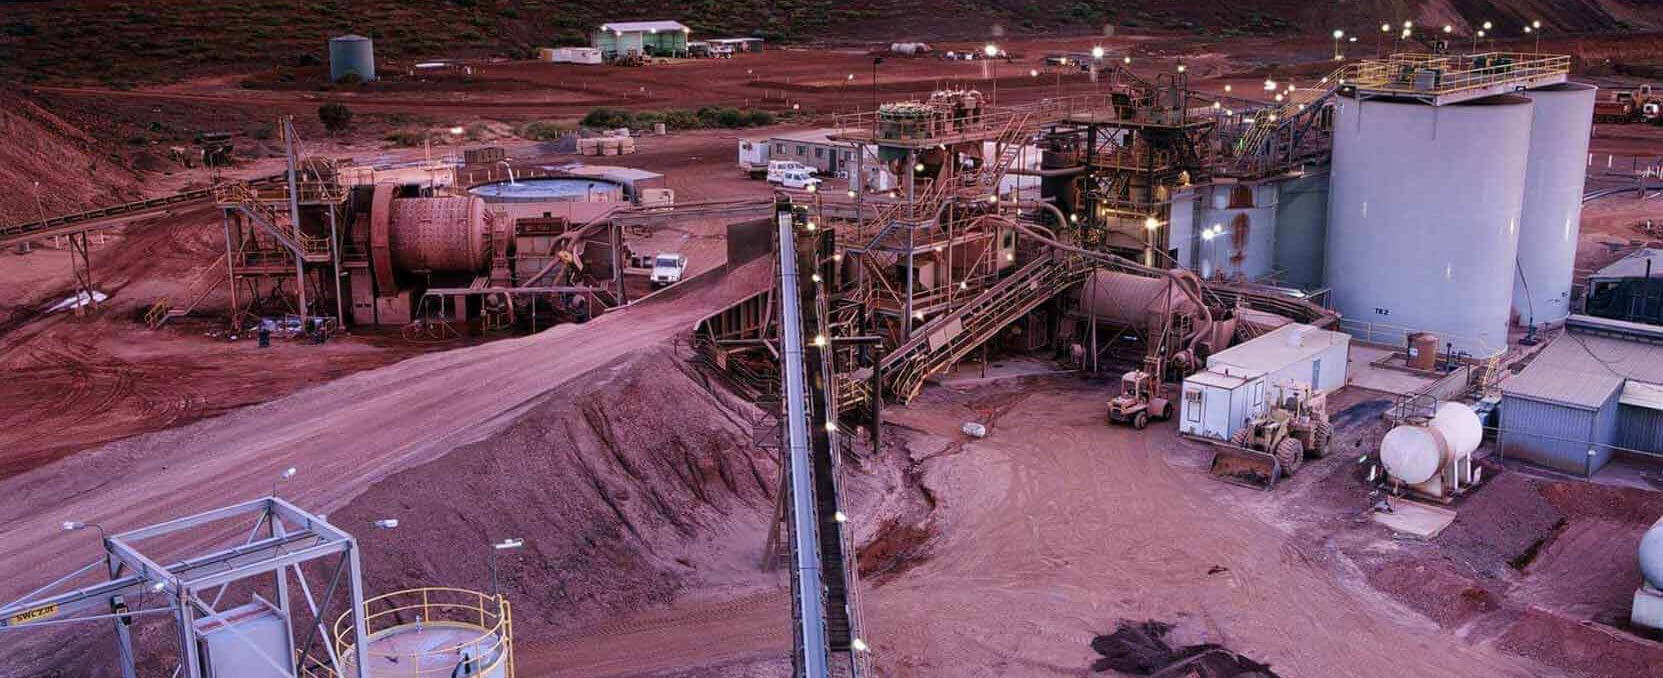 Supplying equipment to the mining, metallurgical and mineral industry